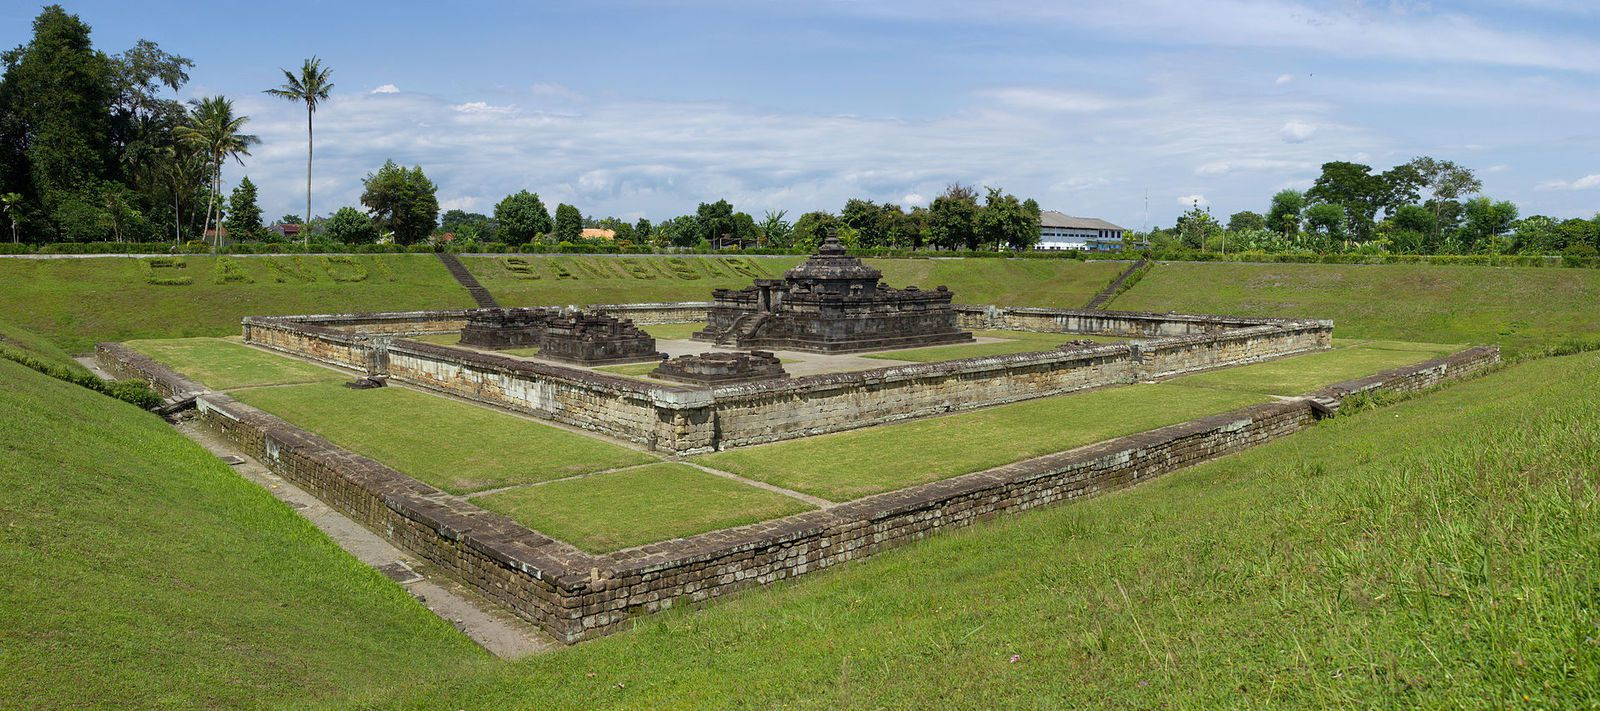 Panorama du Candi Sambisari / Java - photo Crisco 1492 / CC BY-SA 3.0